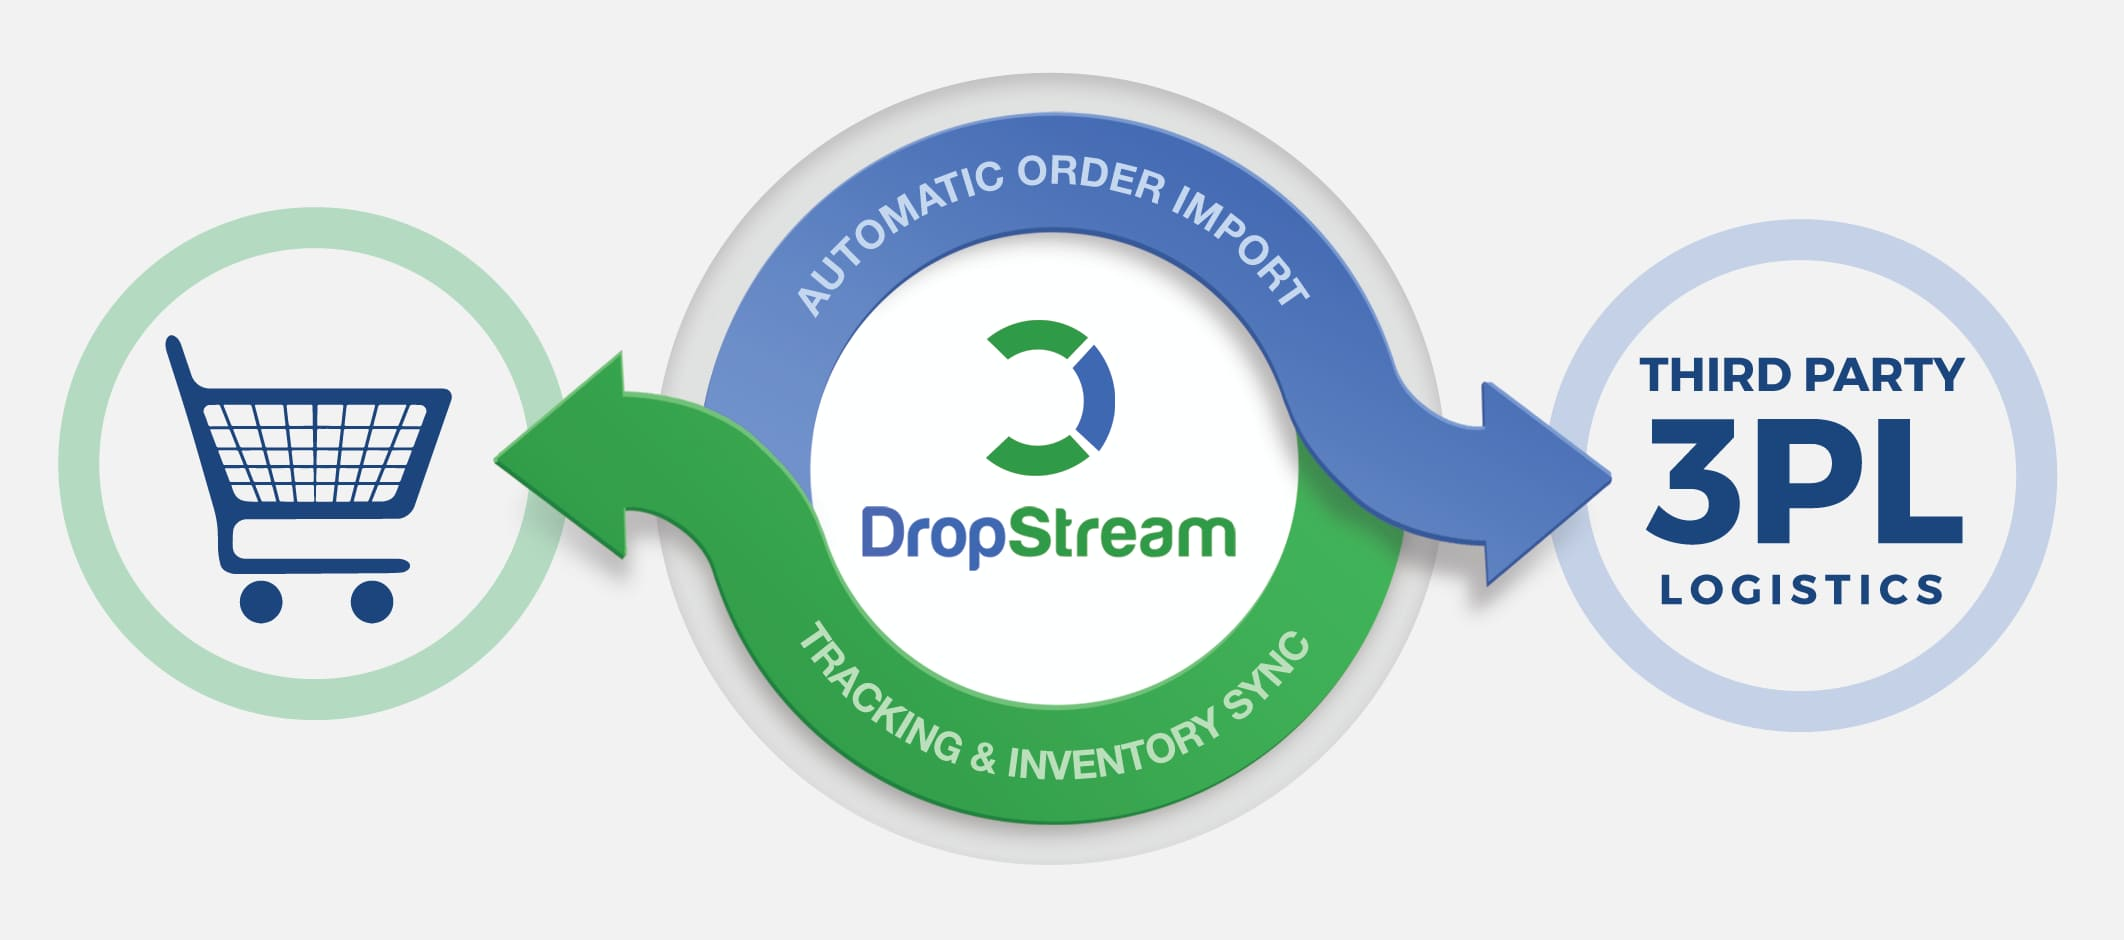 DropStream - Workflow